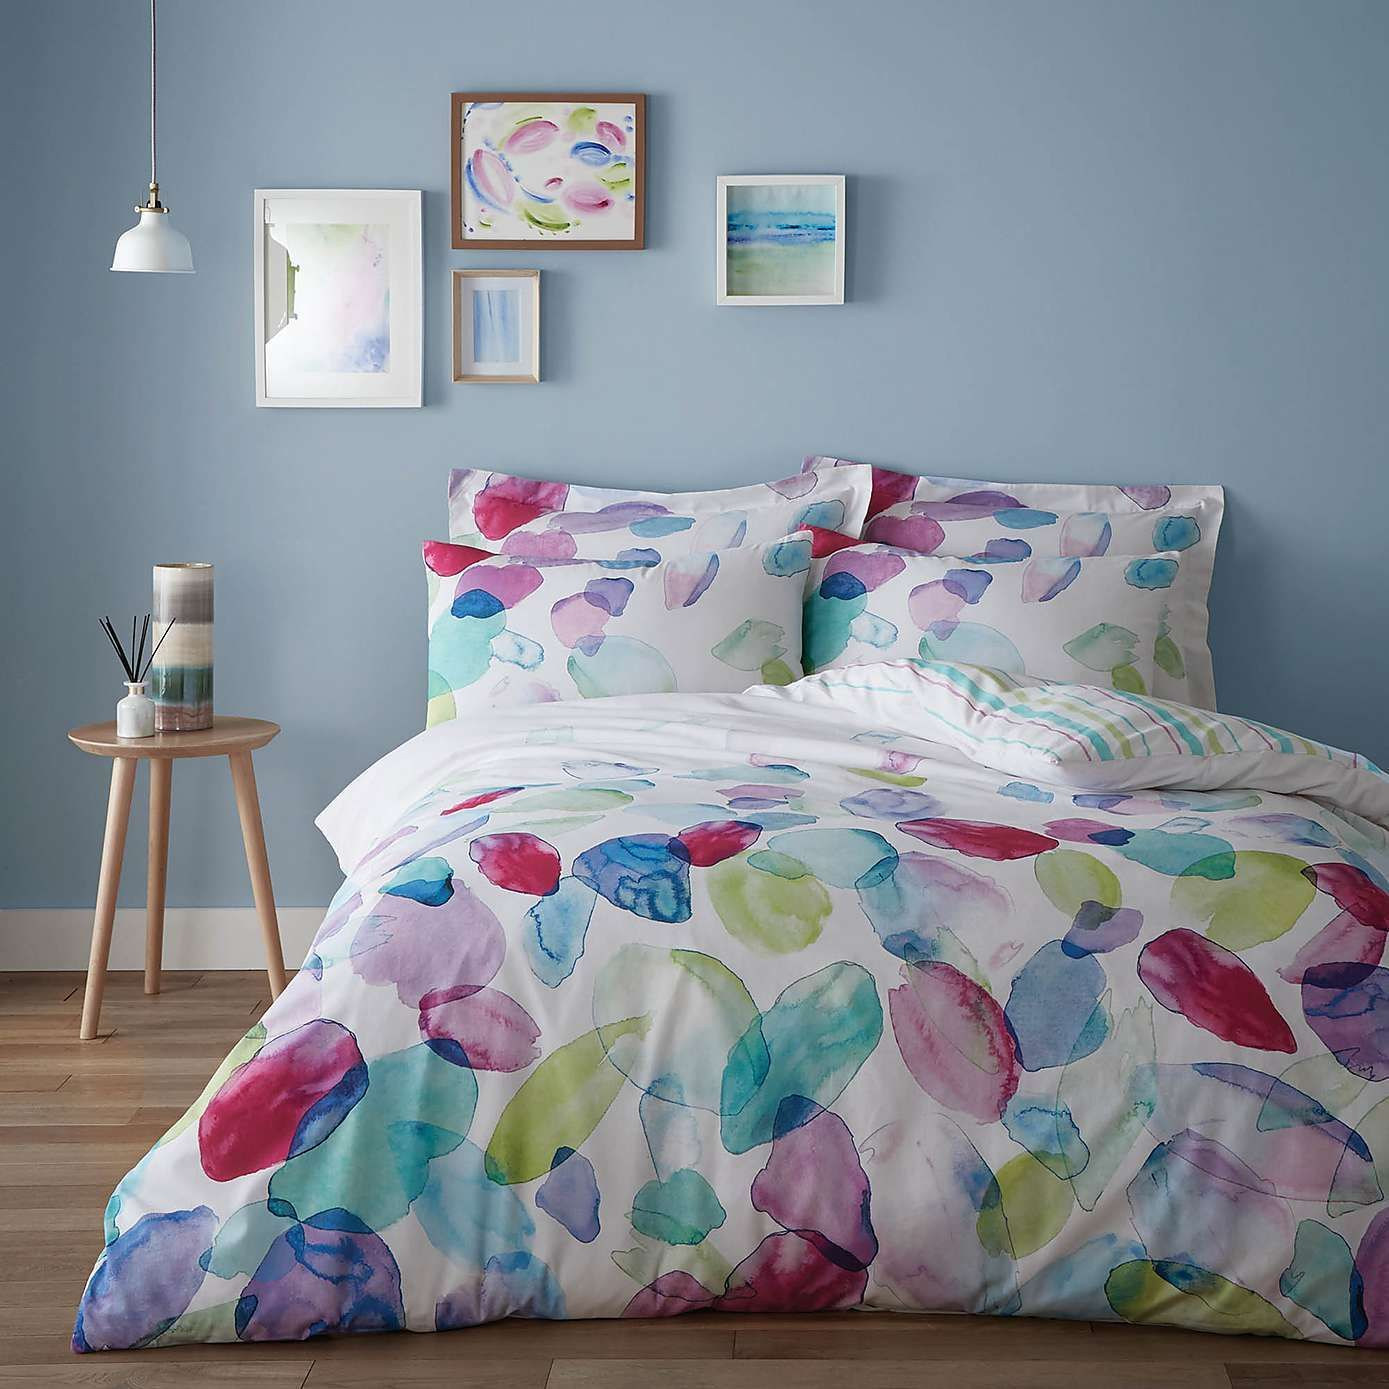 Mila Bed Linen Collection Dunelm With Images Bed Linens